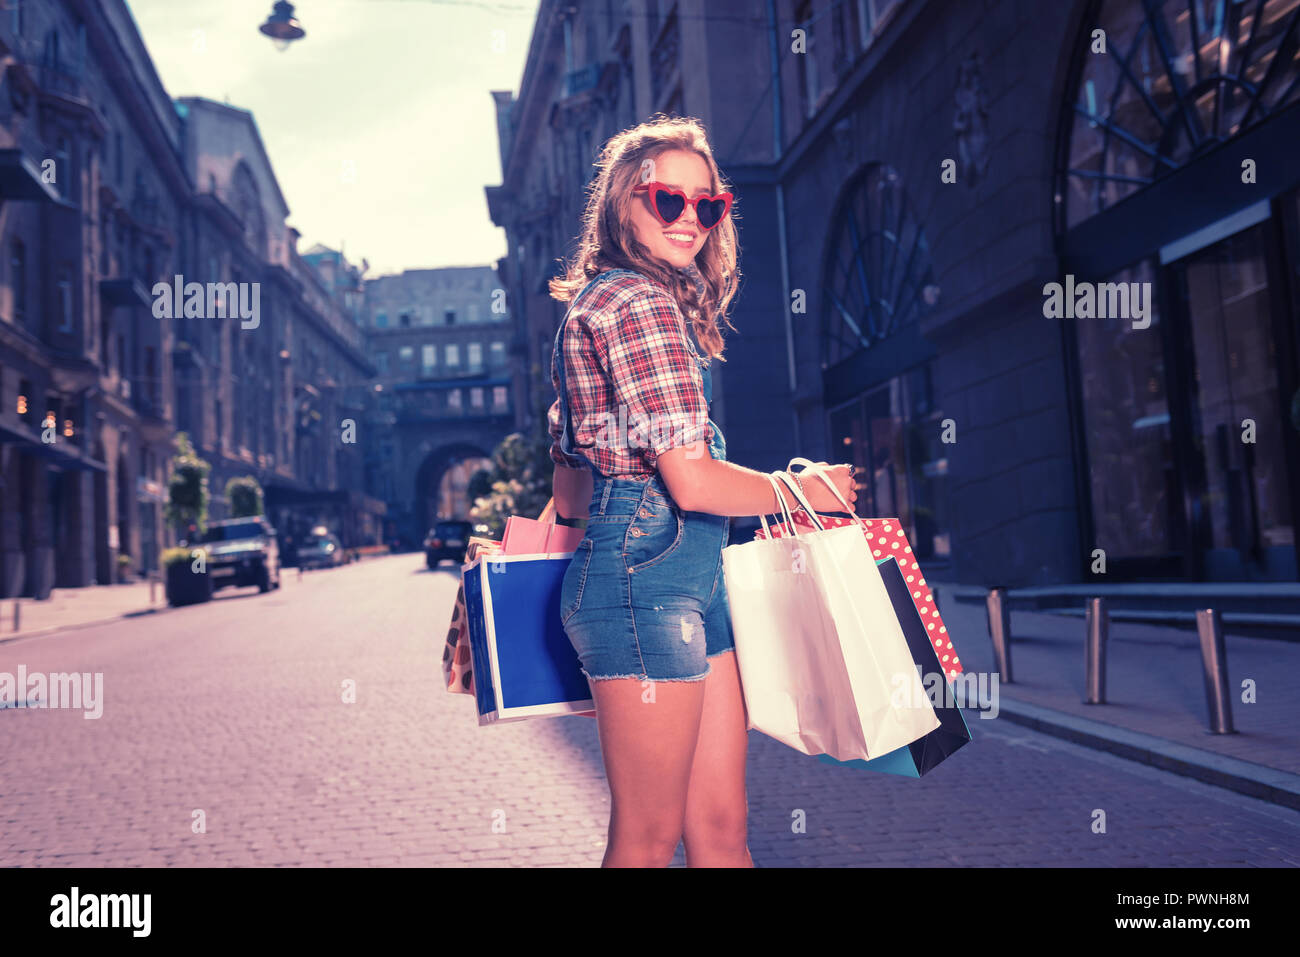 Stylish woman wearing squared shirt and denim jumpsuit holding shopping bags - Stock Image